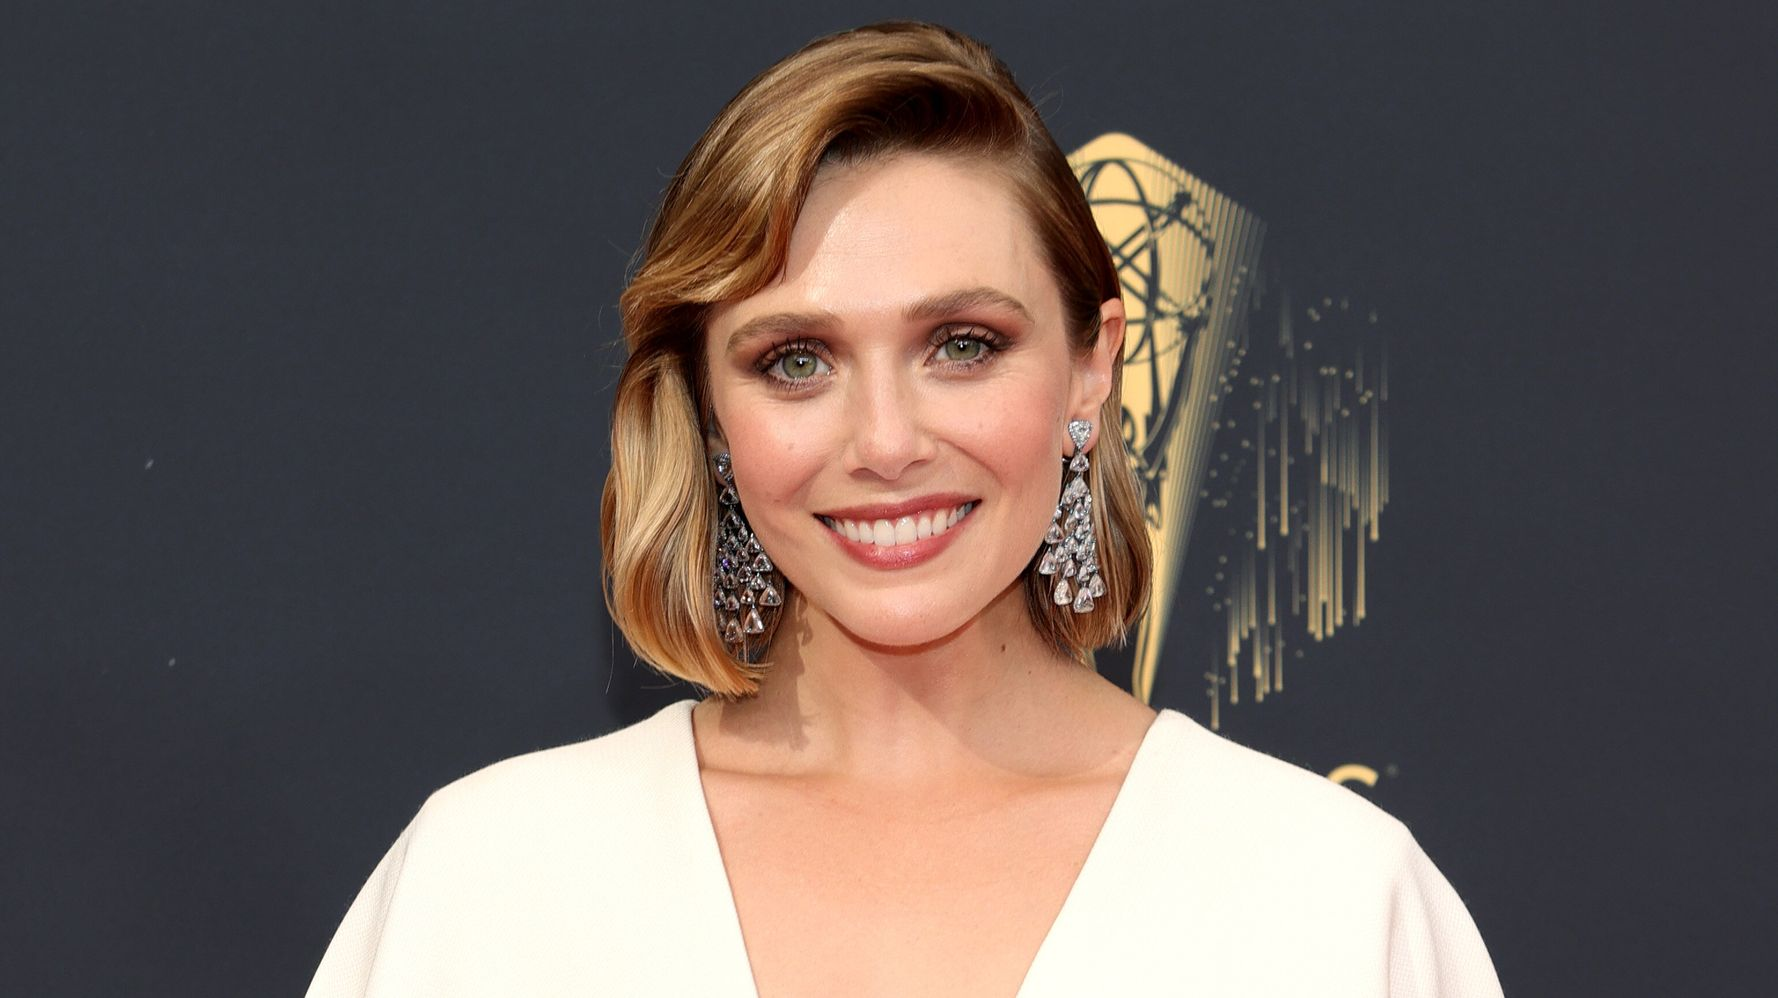 Elizabeth Olsen Is A (Wanda) Vision In Emmys Gown Made By Sisters Mary Kate And Ashley